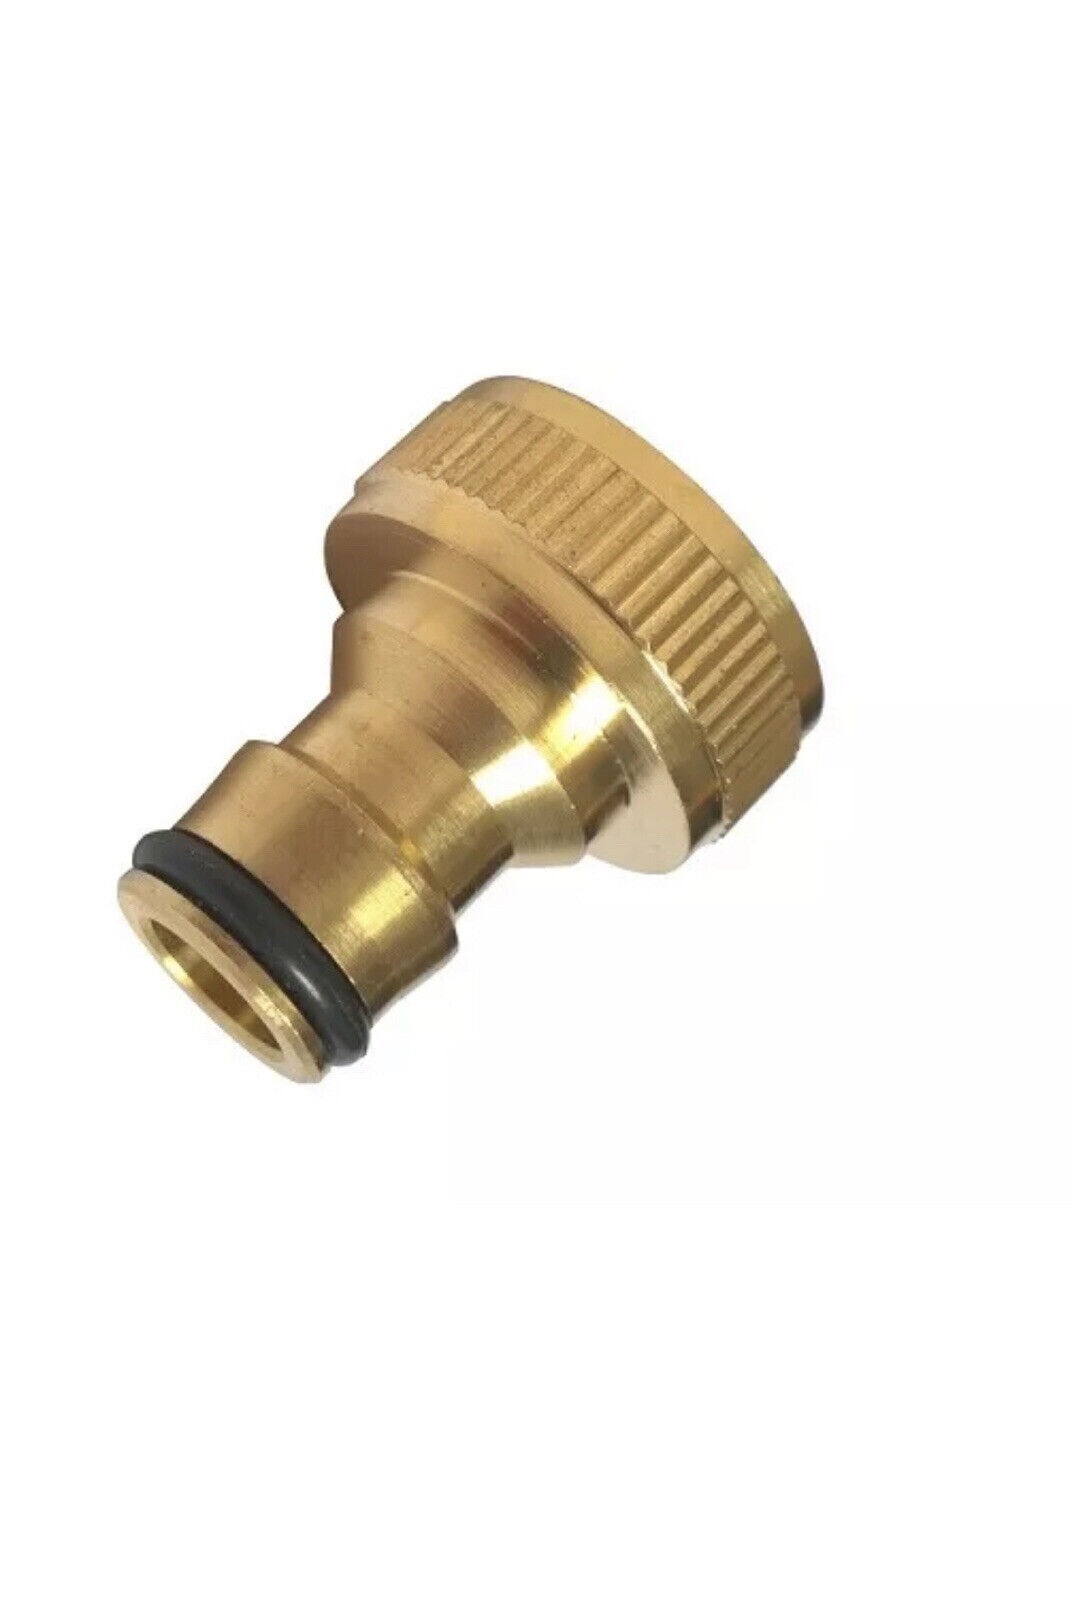 Brass Hose Tap Connector 3/4